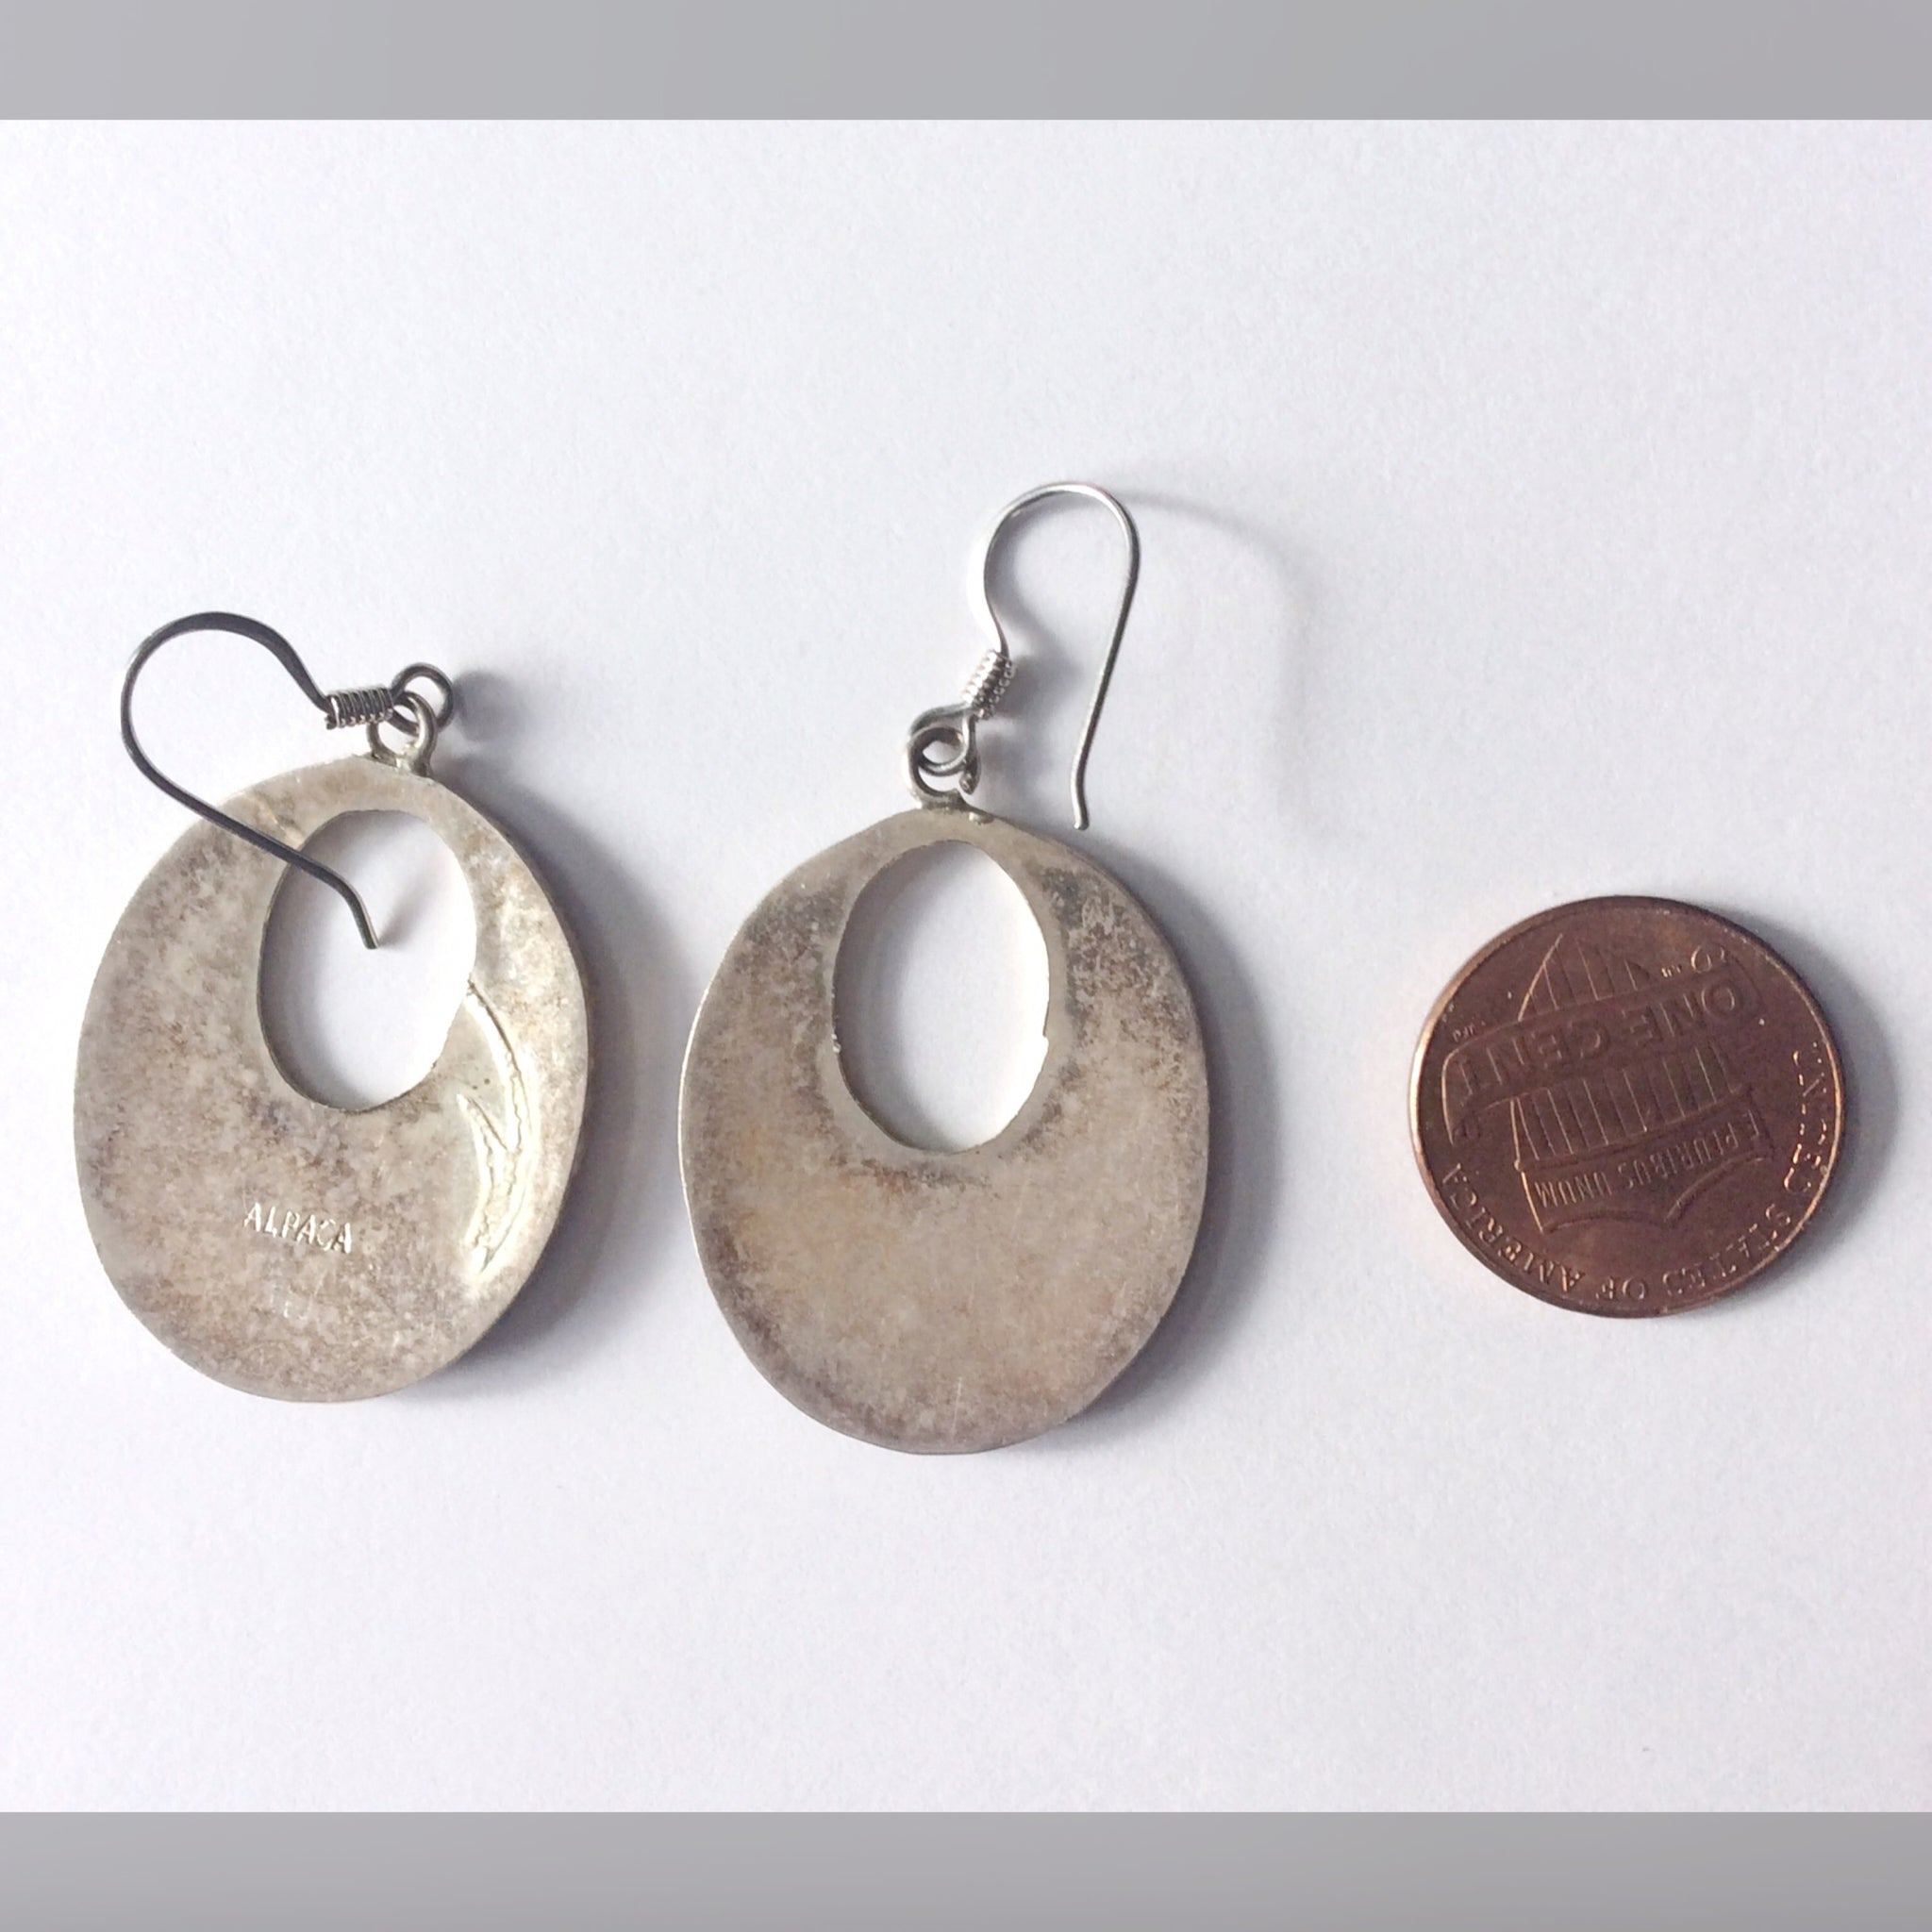 Vintage Alpaca Earrings